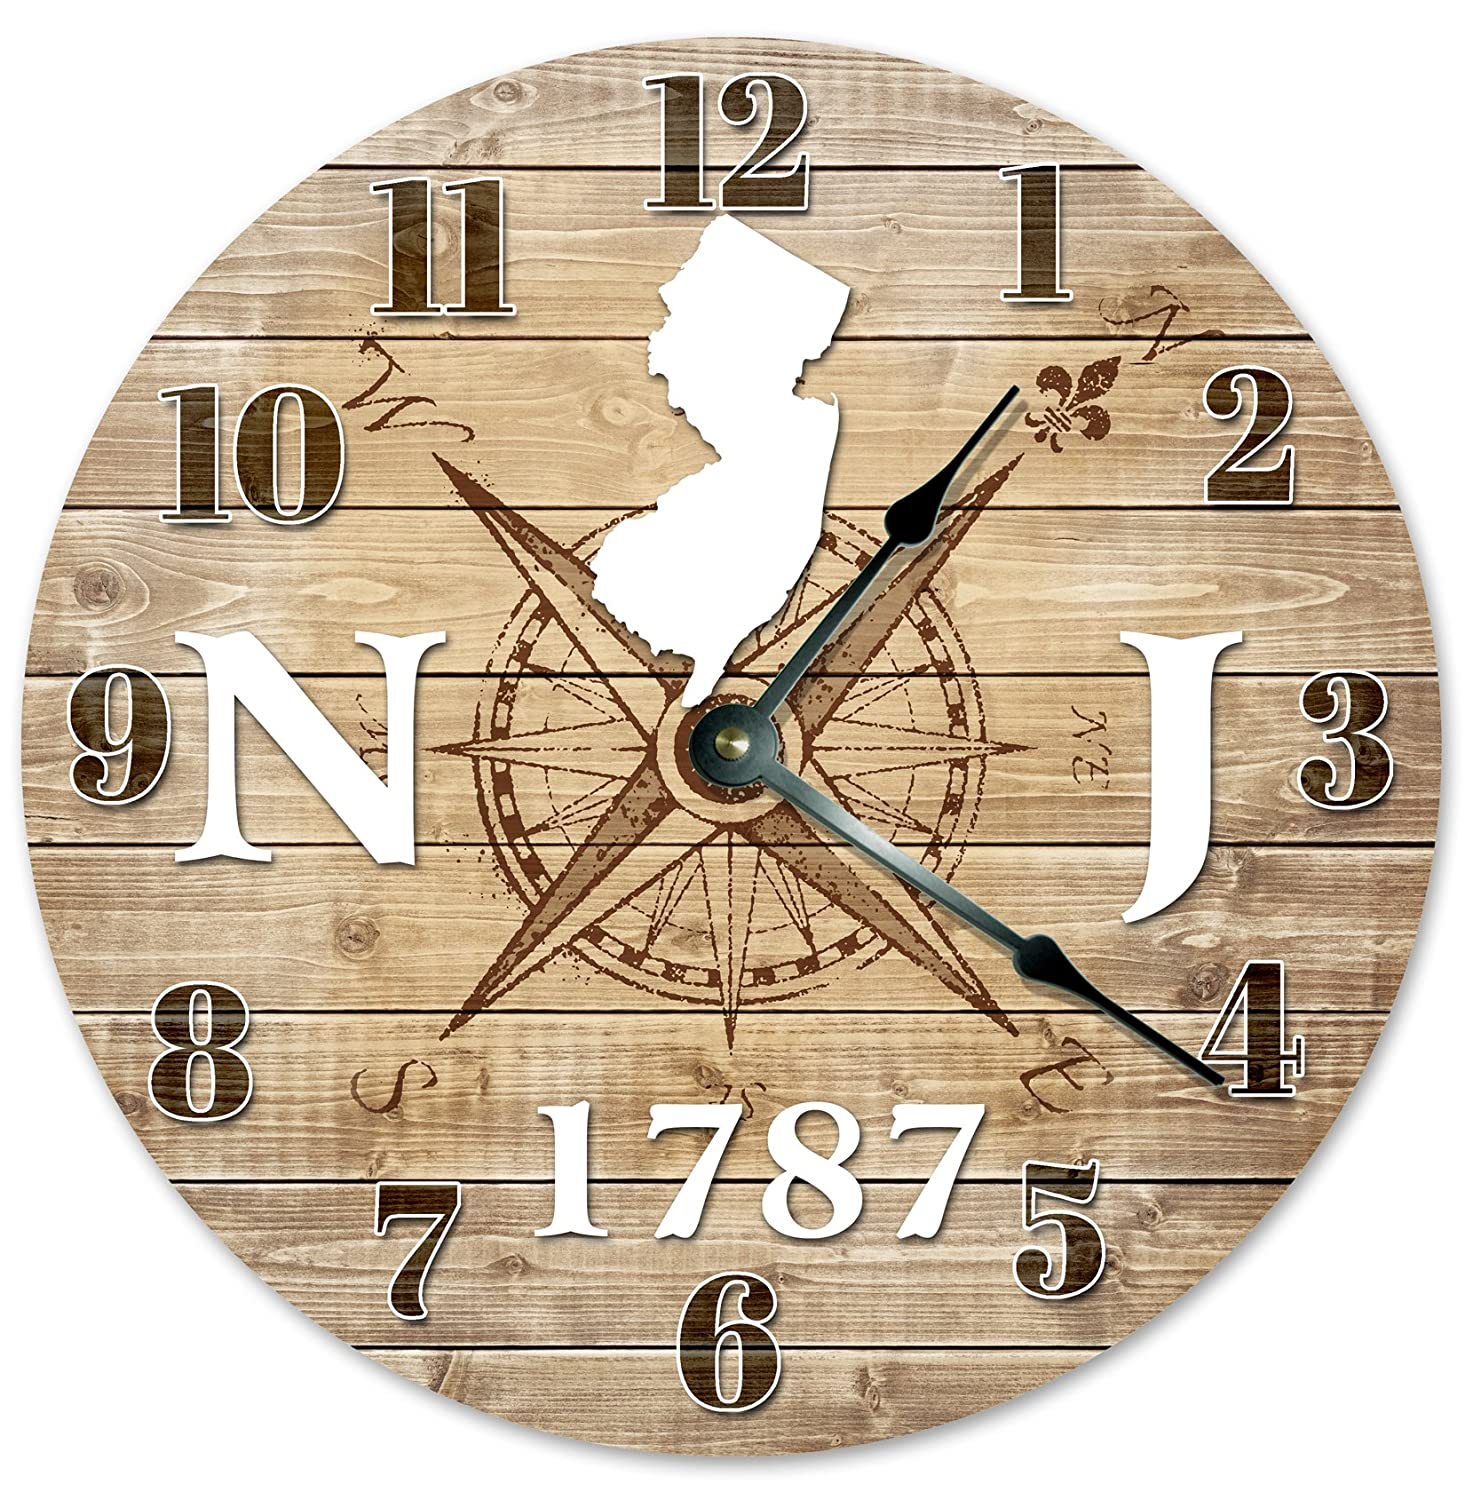 Large 10.5 Wall Clock MISSISSIPPI STATE HOME CLOCK Black and White Rustic Clock